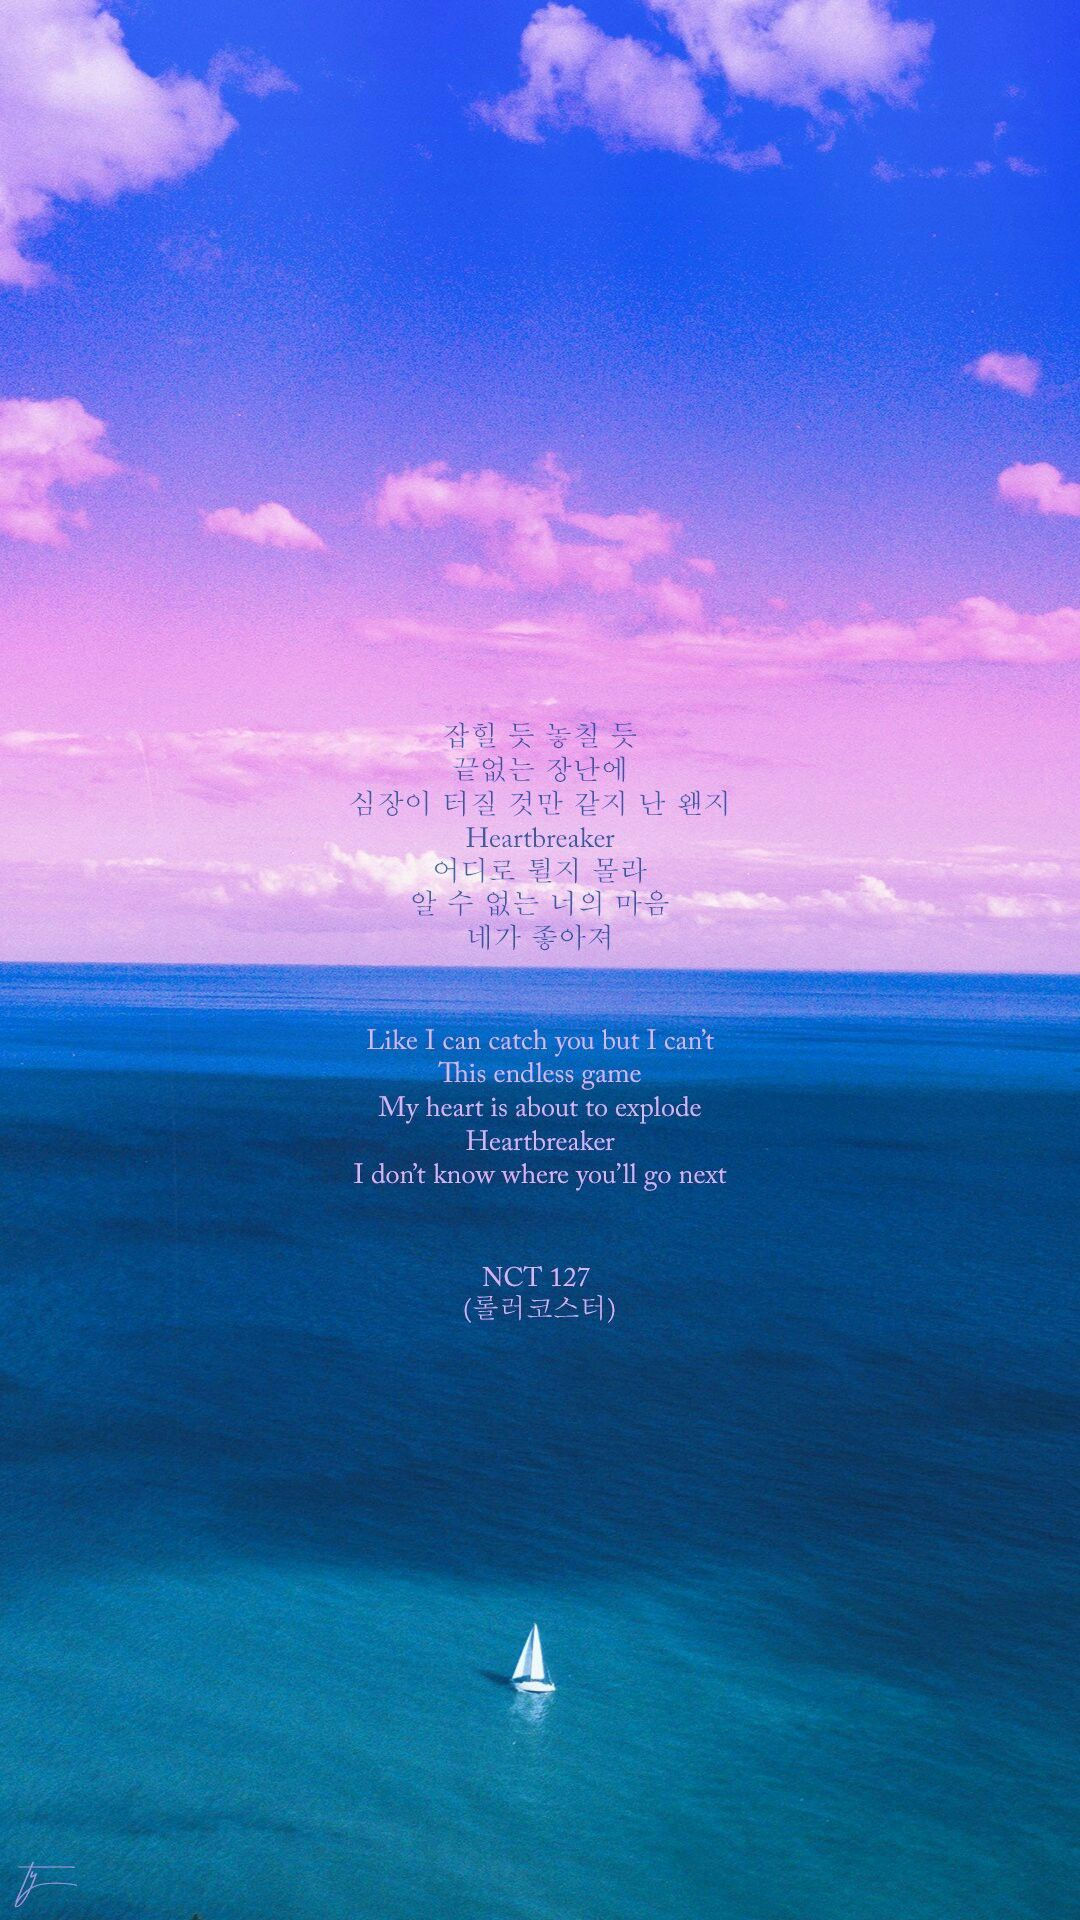 Heartbreaker By Nct 127 At Kpop Lyrics Wallpapers At Kutipan